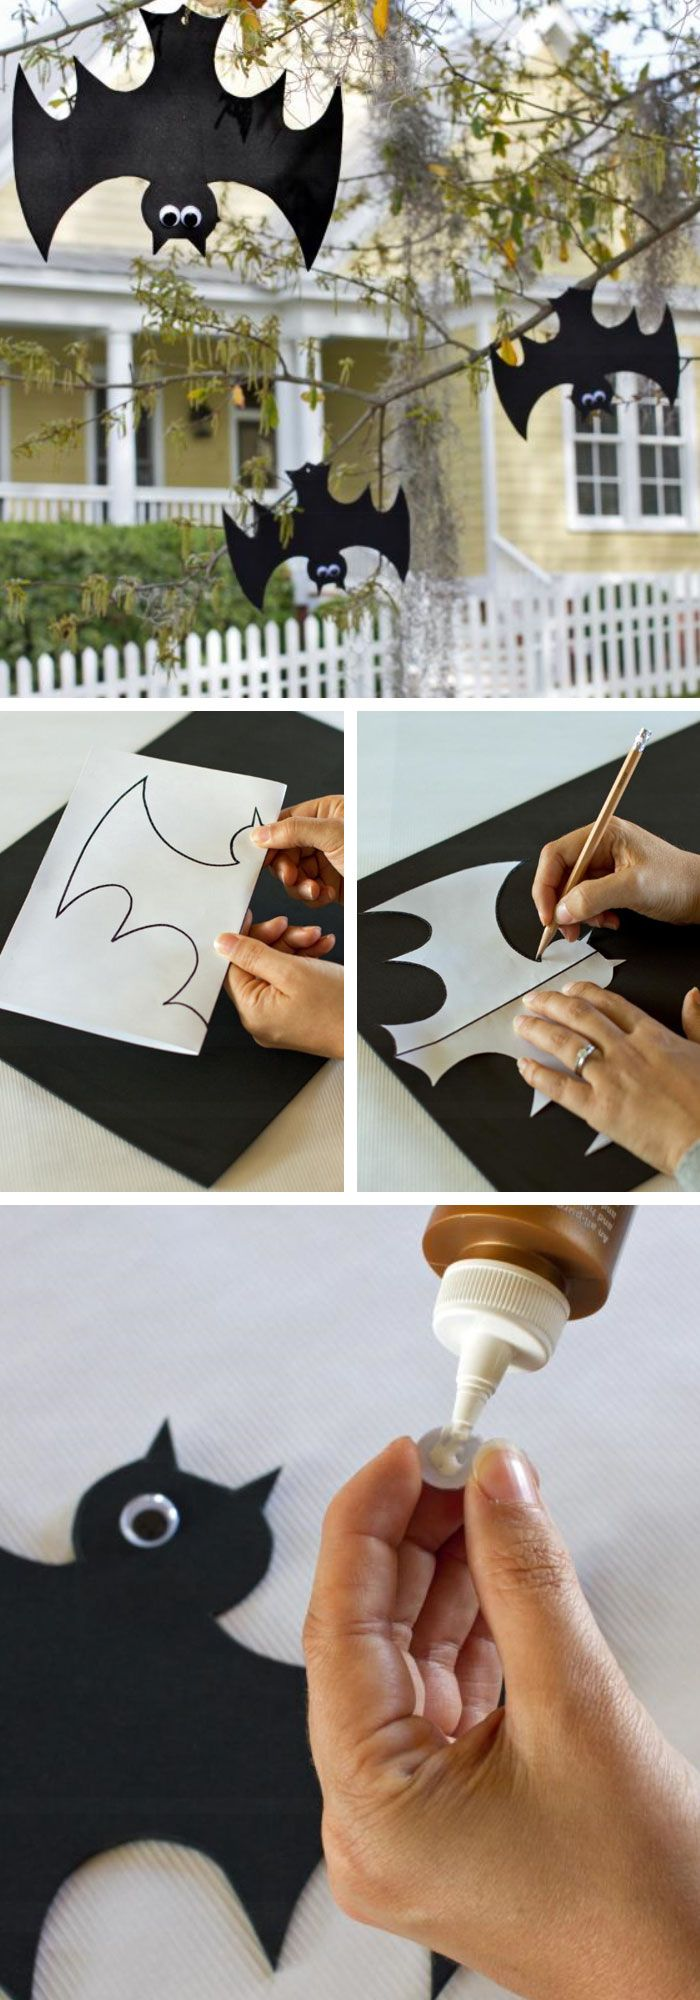 Hanging Foam Bats | Click Pic for 20 DIY Halloween Decorations for Kids to Make | Cheap and Easy Halloween Decorations on a Budget